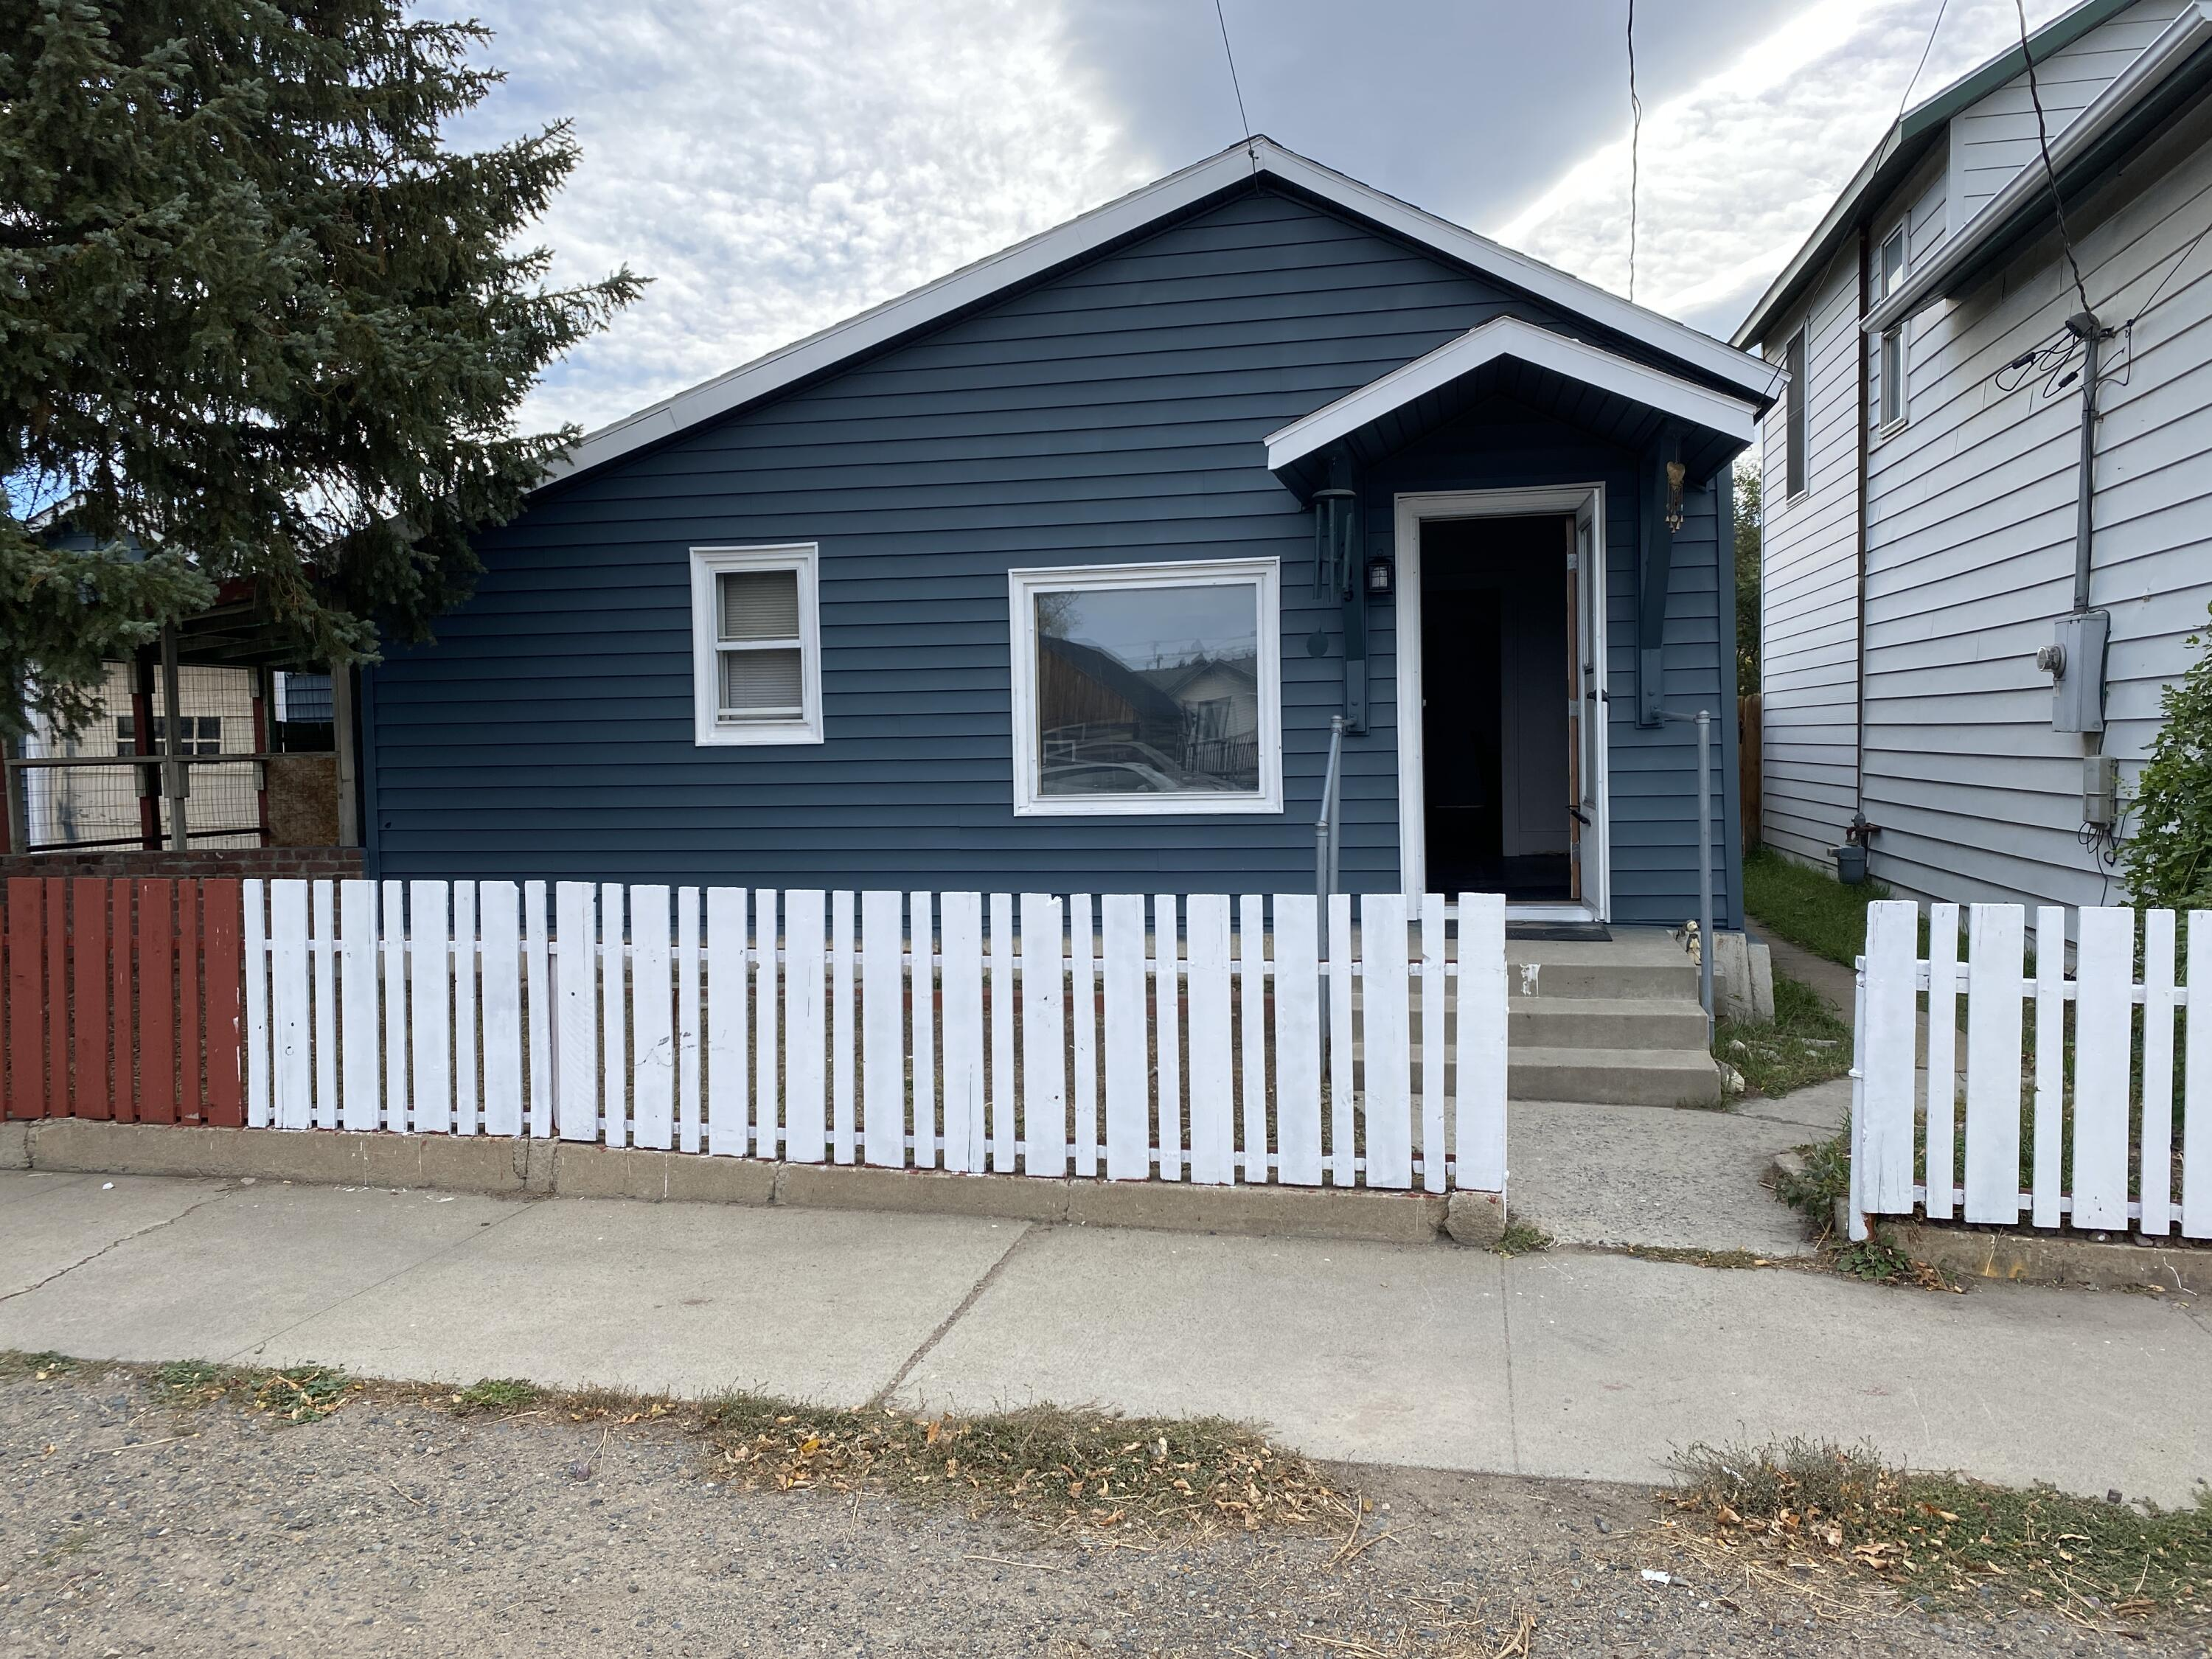 Great starter with just few finishes left.  Enjoy a growing community with the outdoors just minutes away.  Spacious back yard for the critters.  Some updates have been made but waiting for your touch!